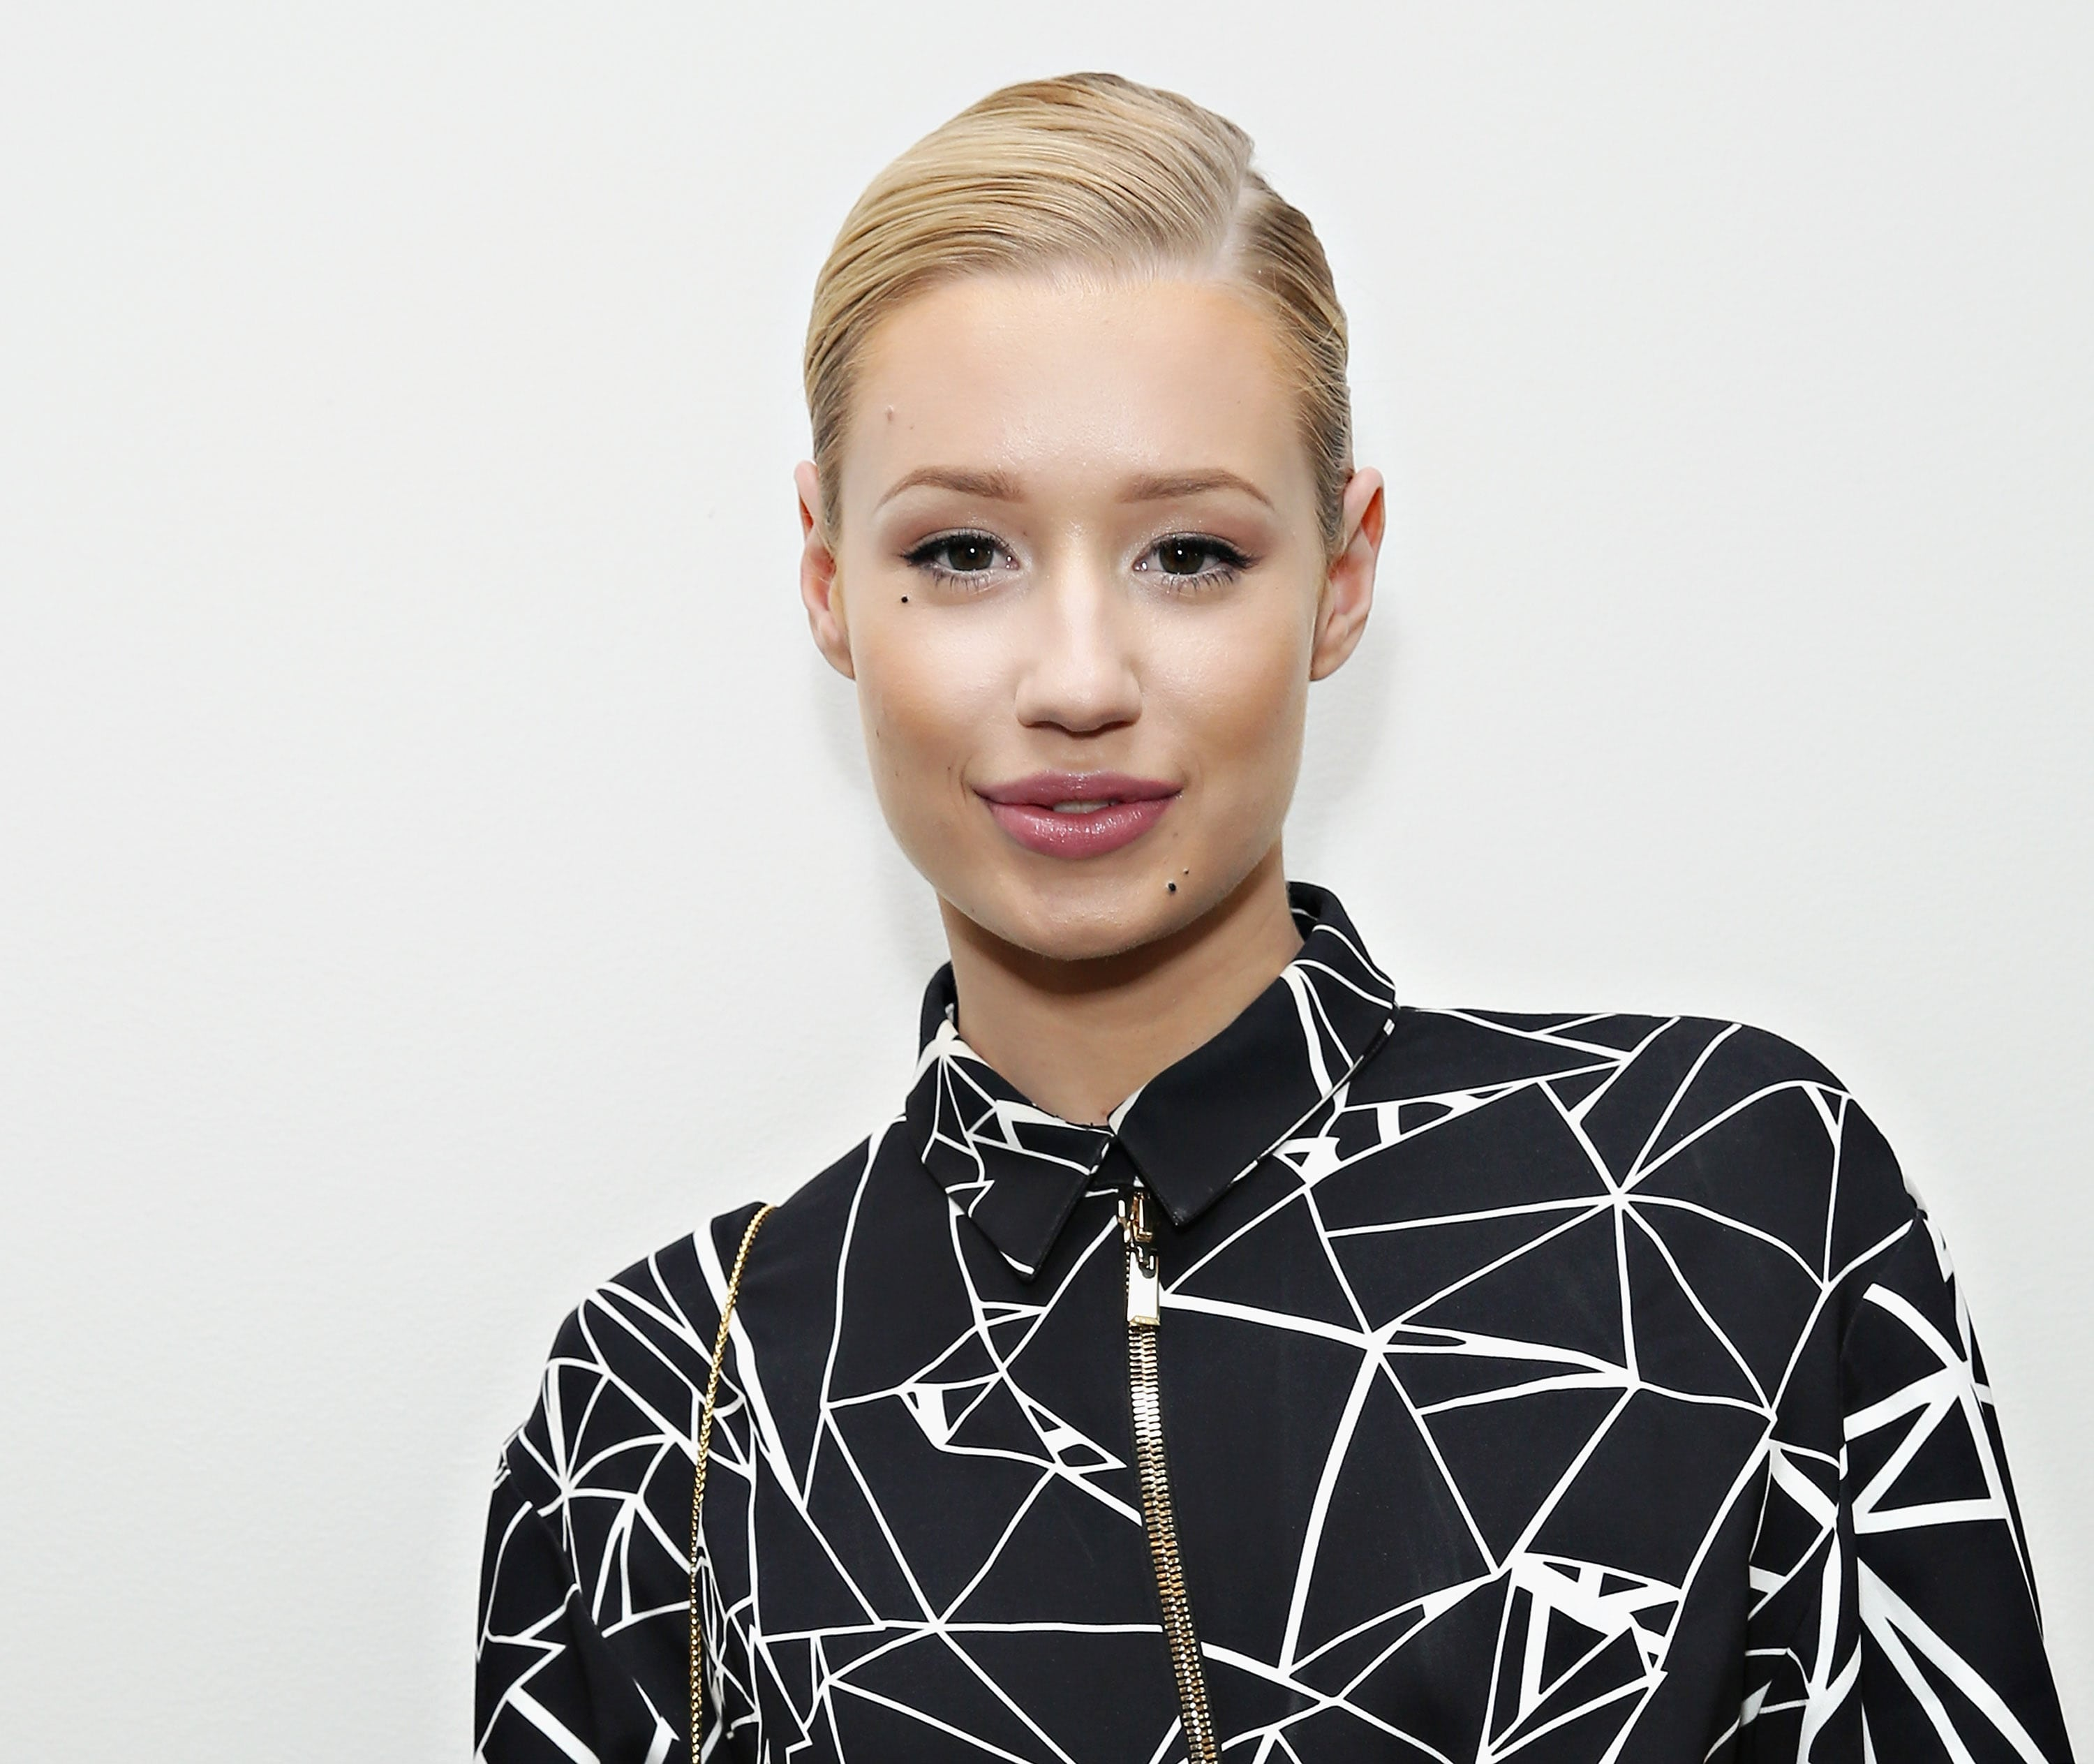 Iggy Azalea HQ wallpapers